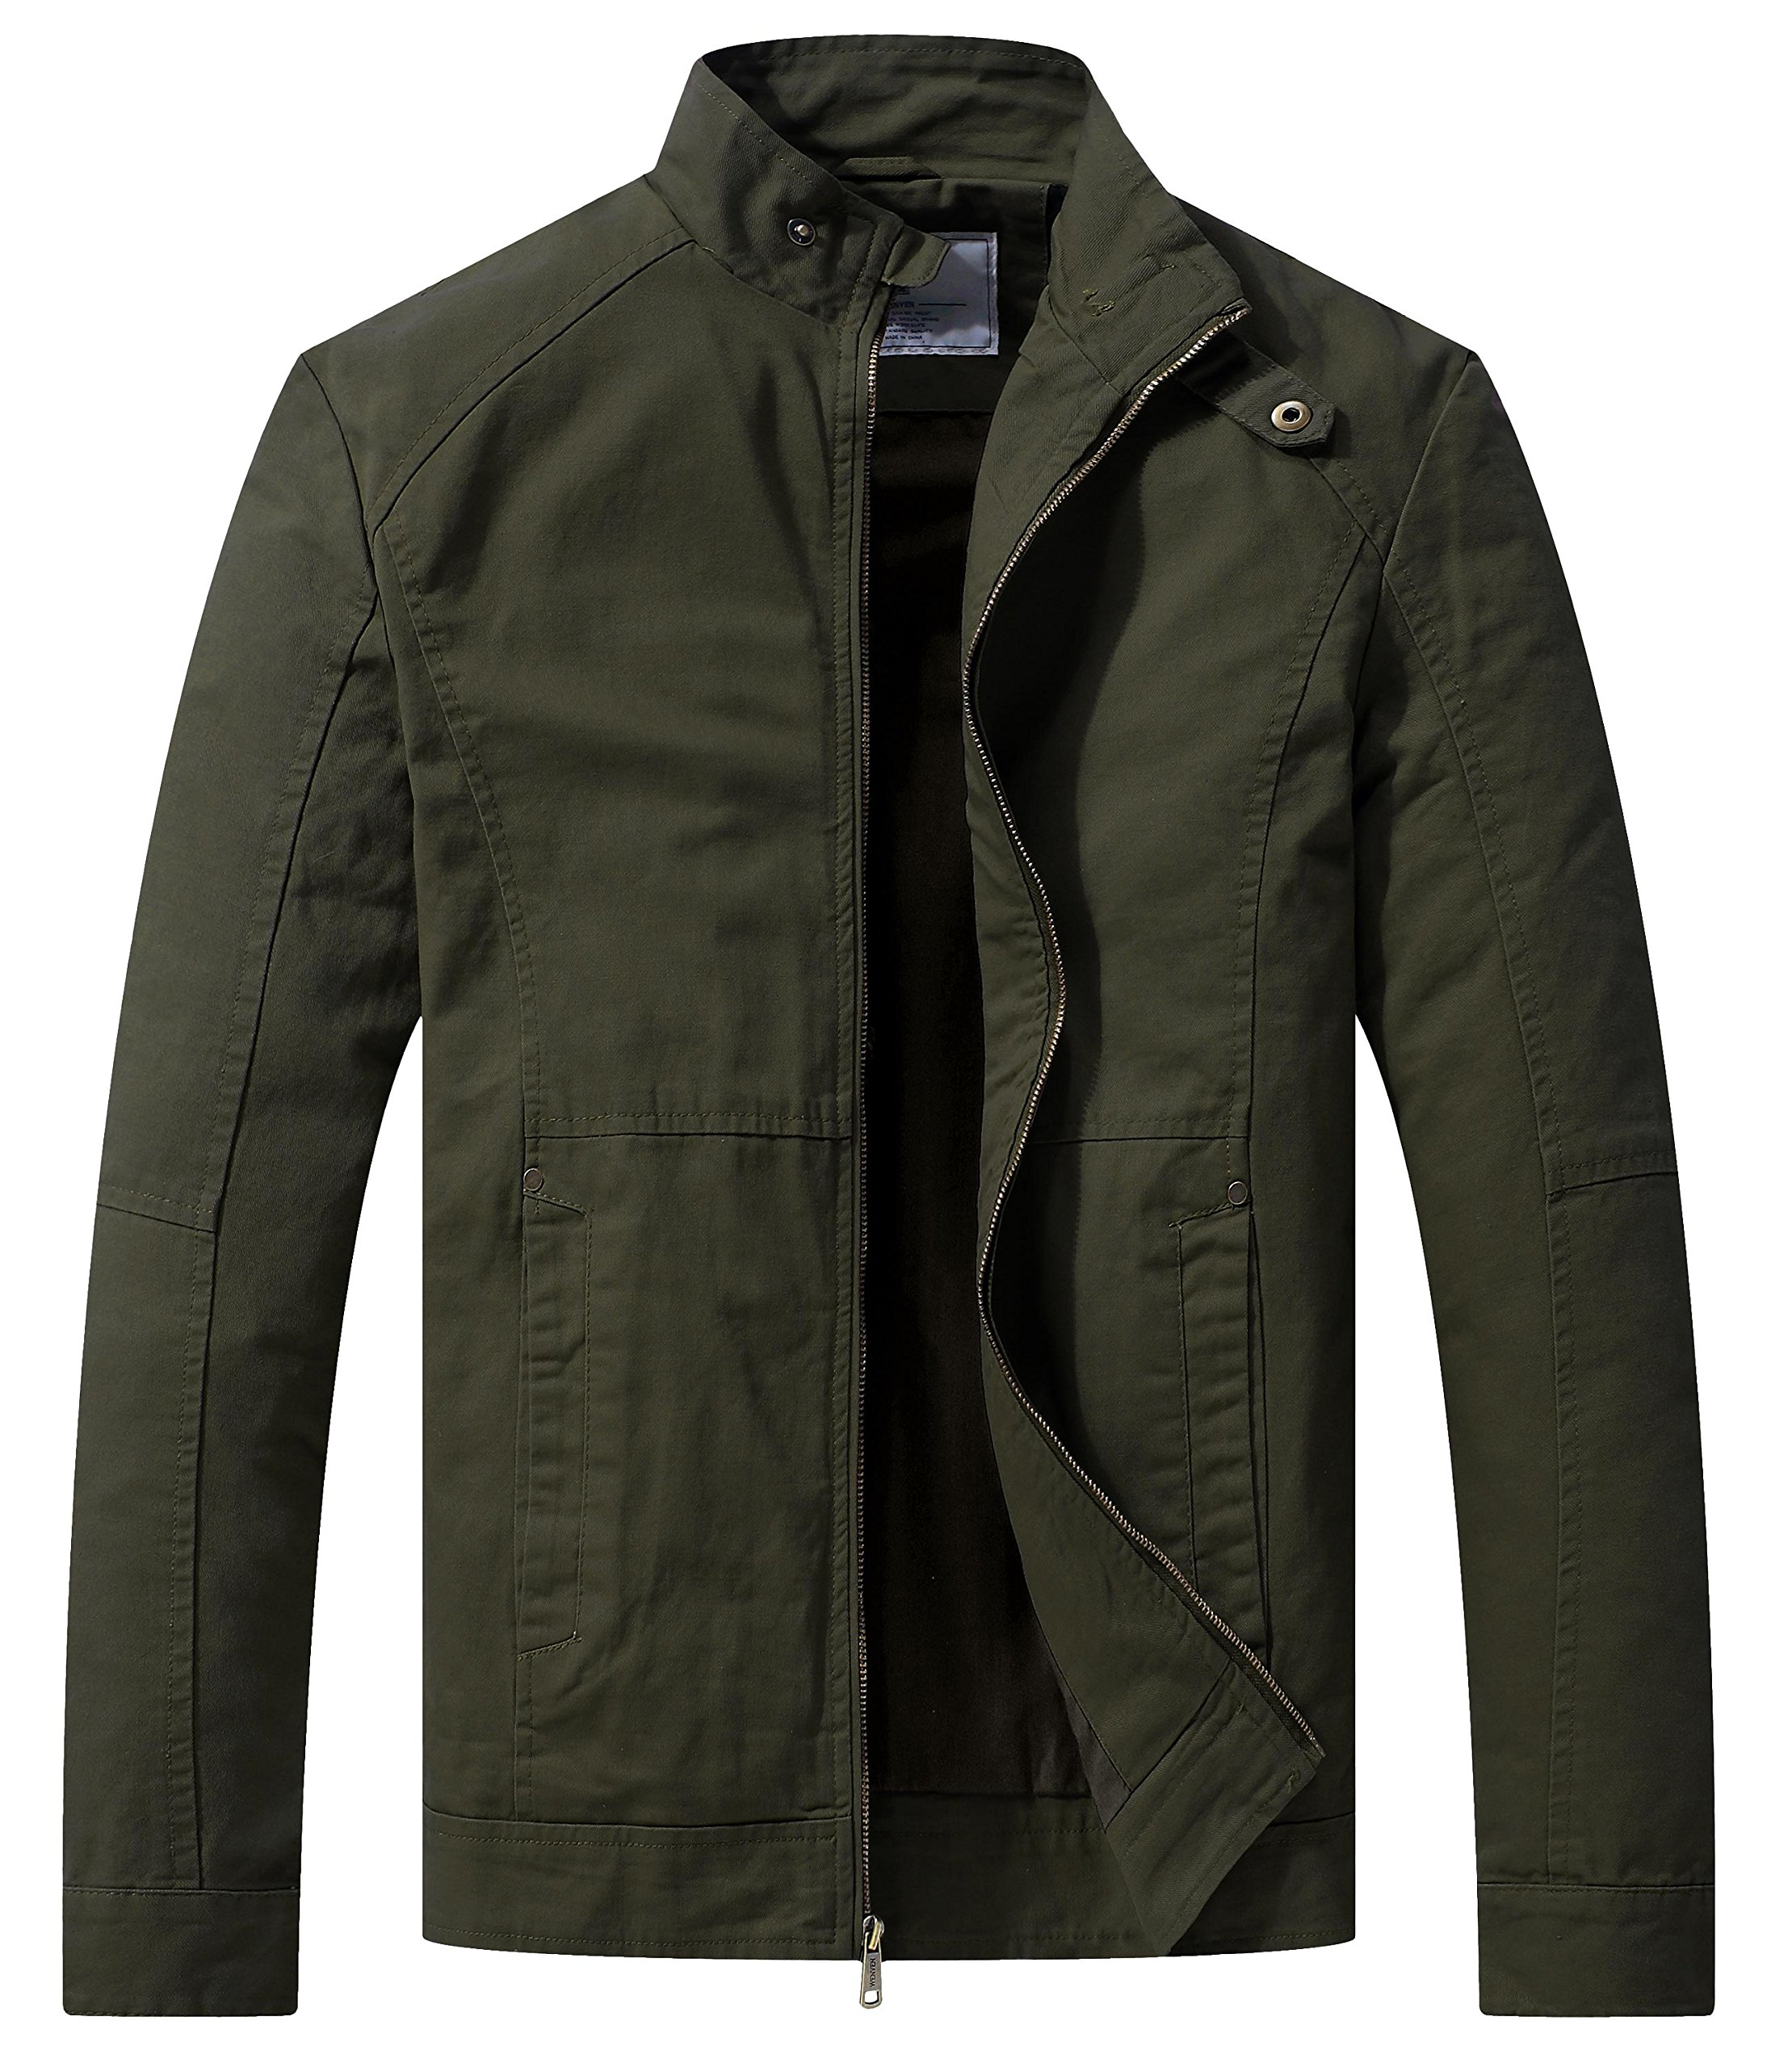 WenVen Men's Spring Casual Lightweight Full Zip Military Jacket(Army Green,L) by WenVen